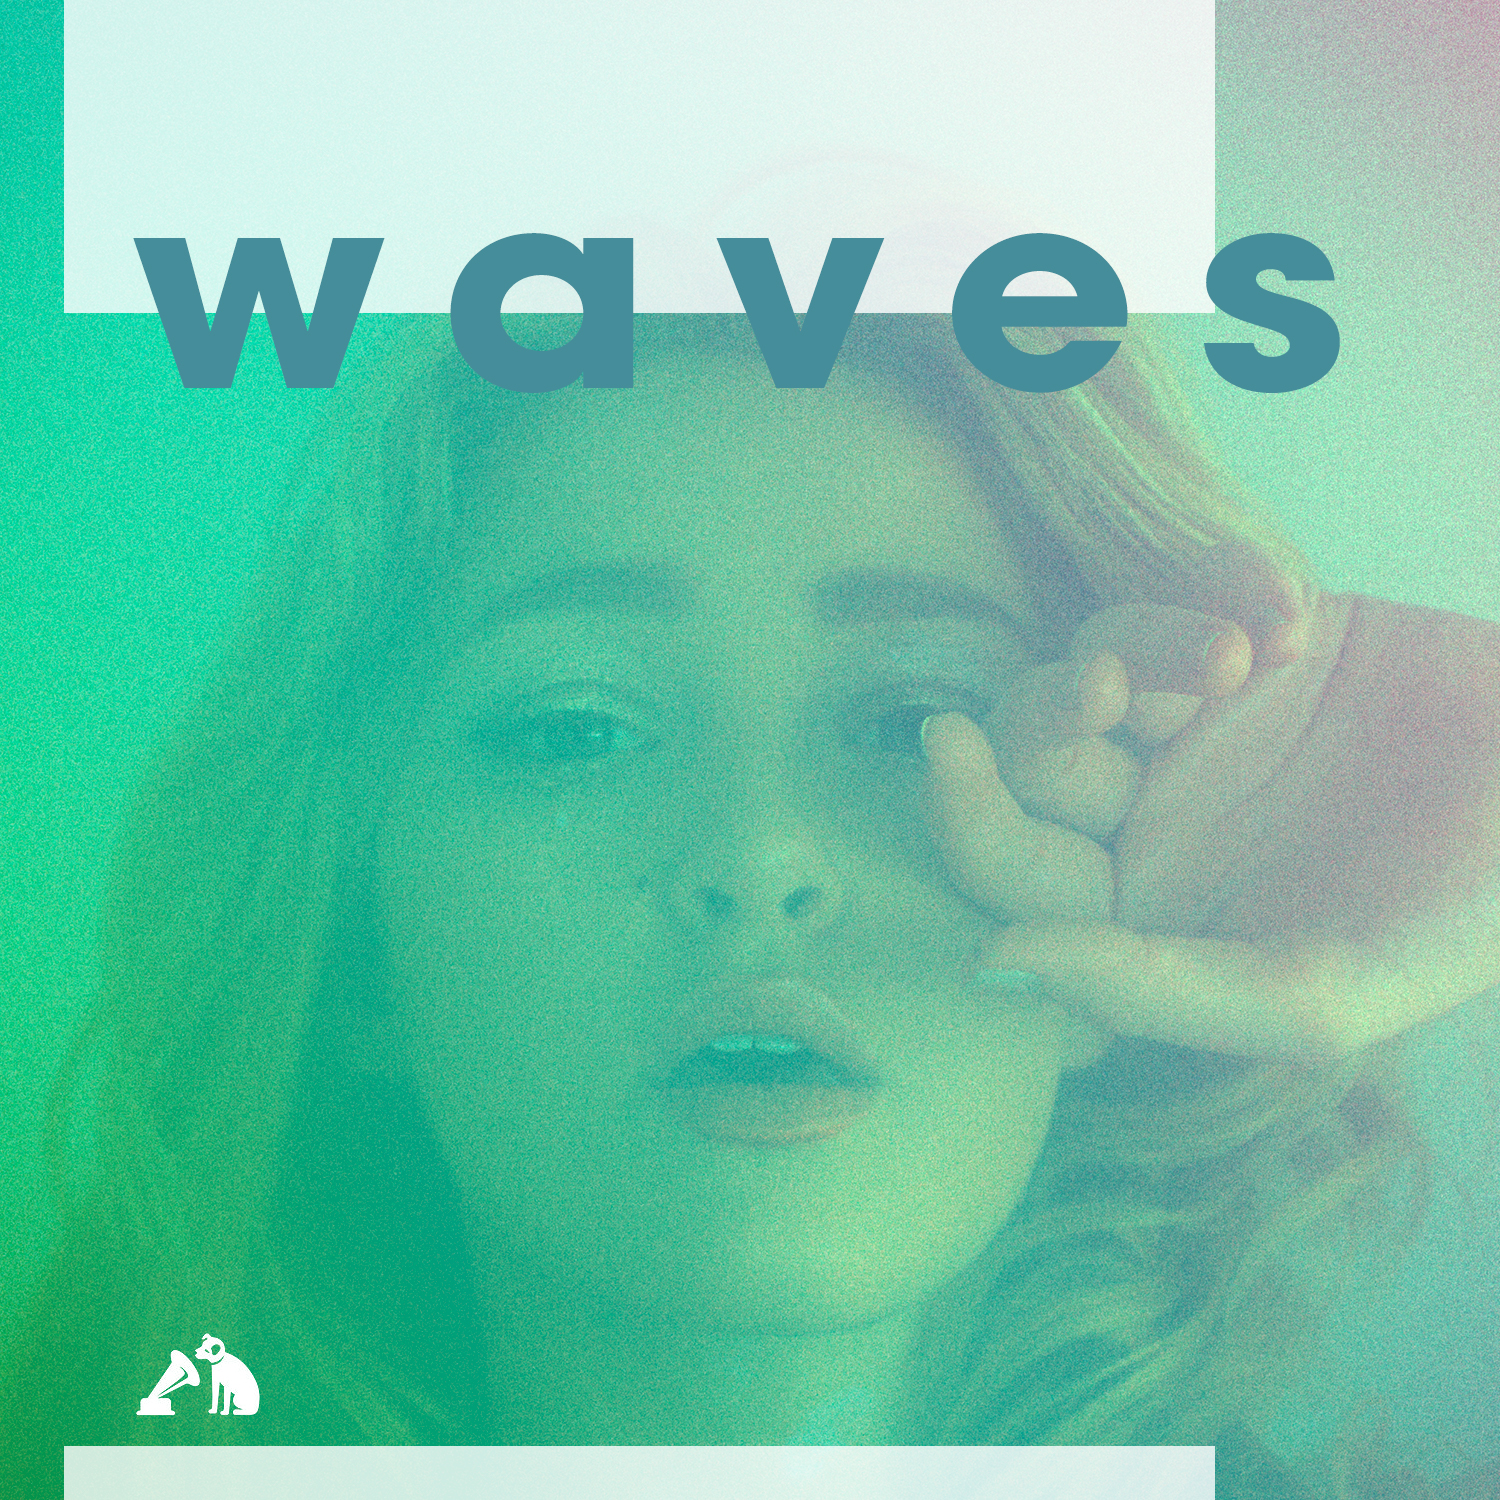 RCA_SummerPlaylist_Waves_July27